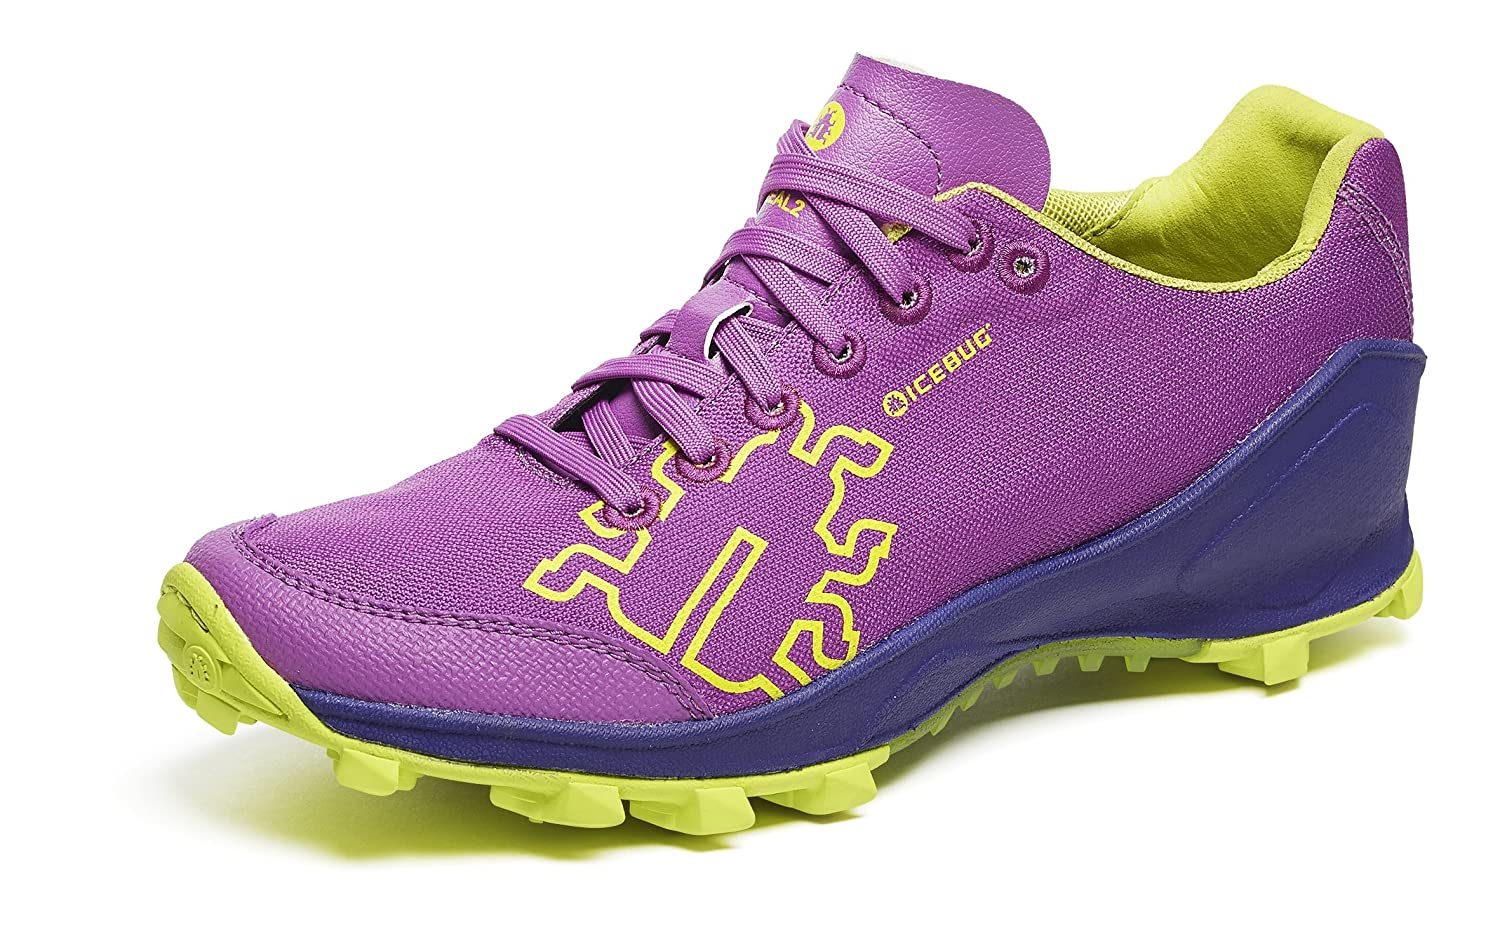 Icebug Women's Zeal2 RB9X Traction Running Shoe